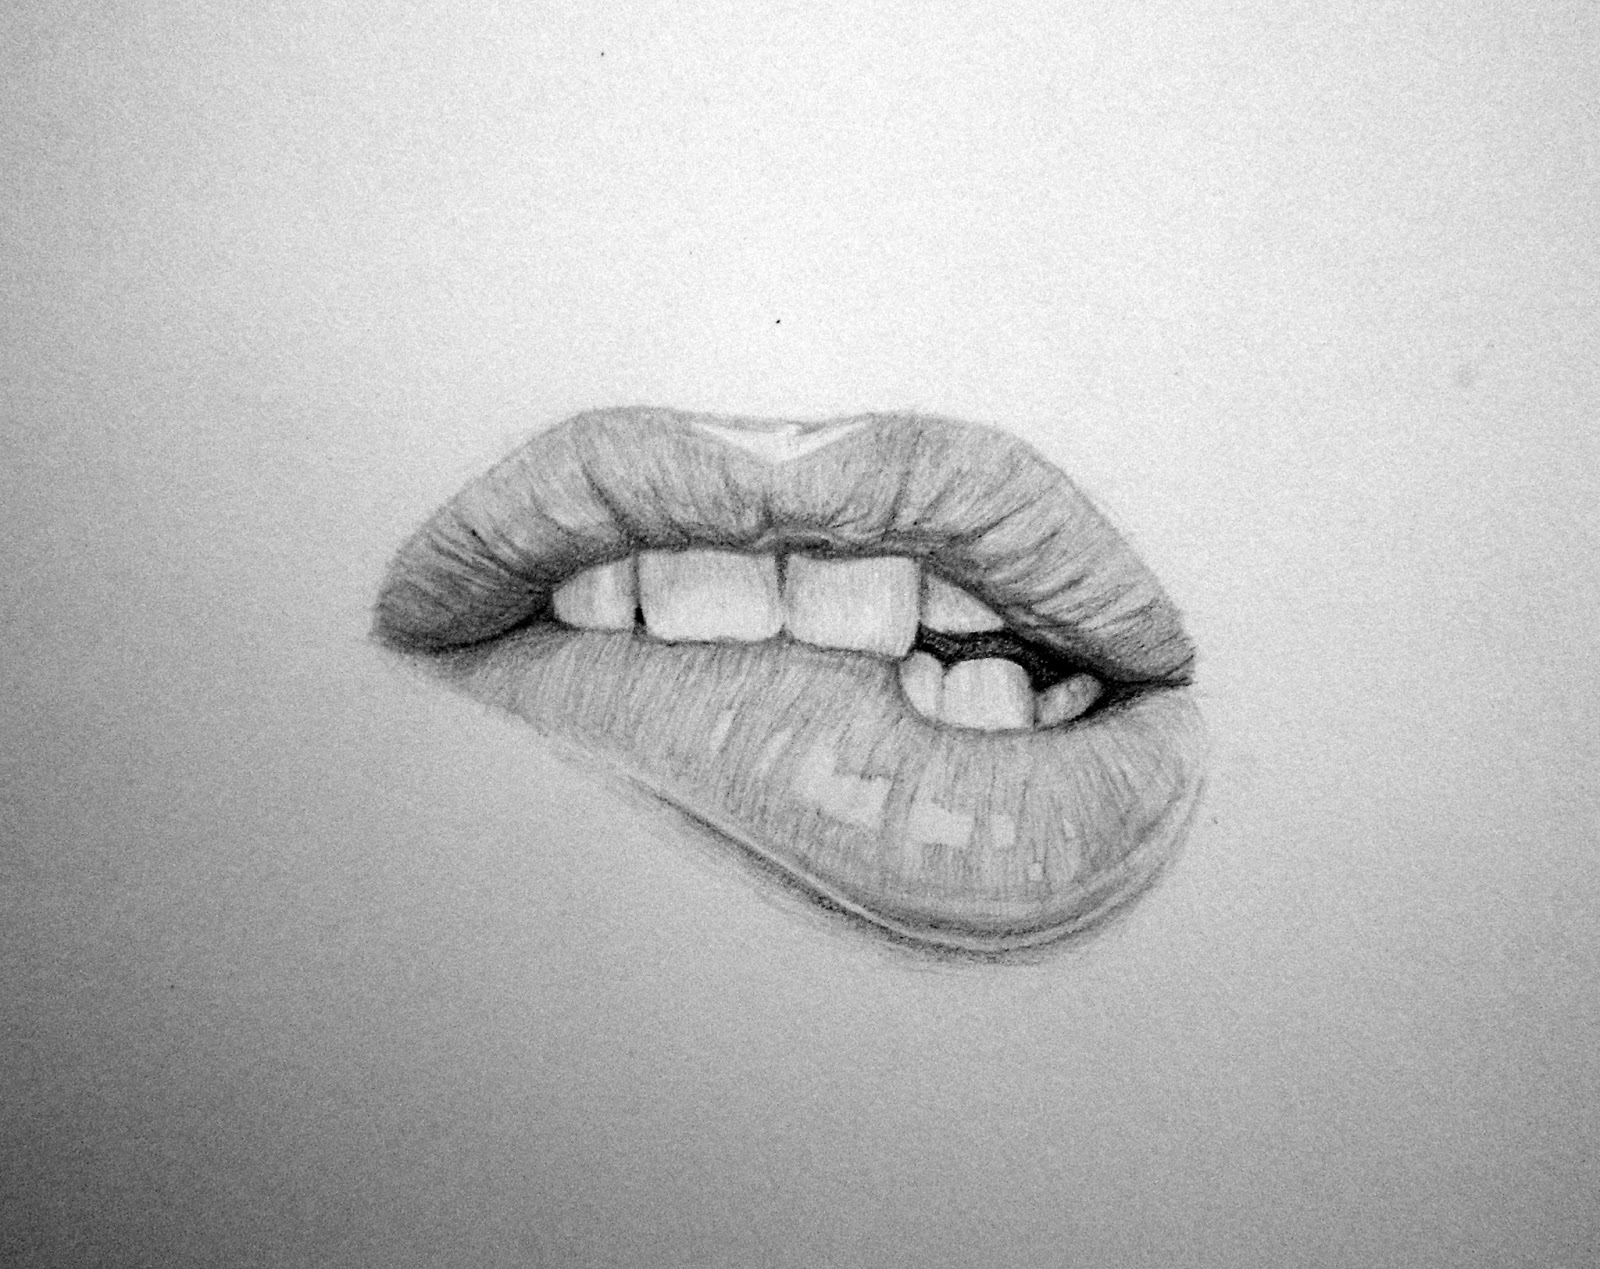 Simple Lips Sketch Images & Pictures - Becuo: becuo.com/simple-lips-sketch